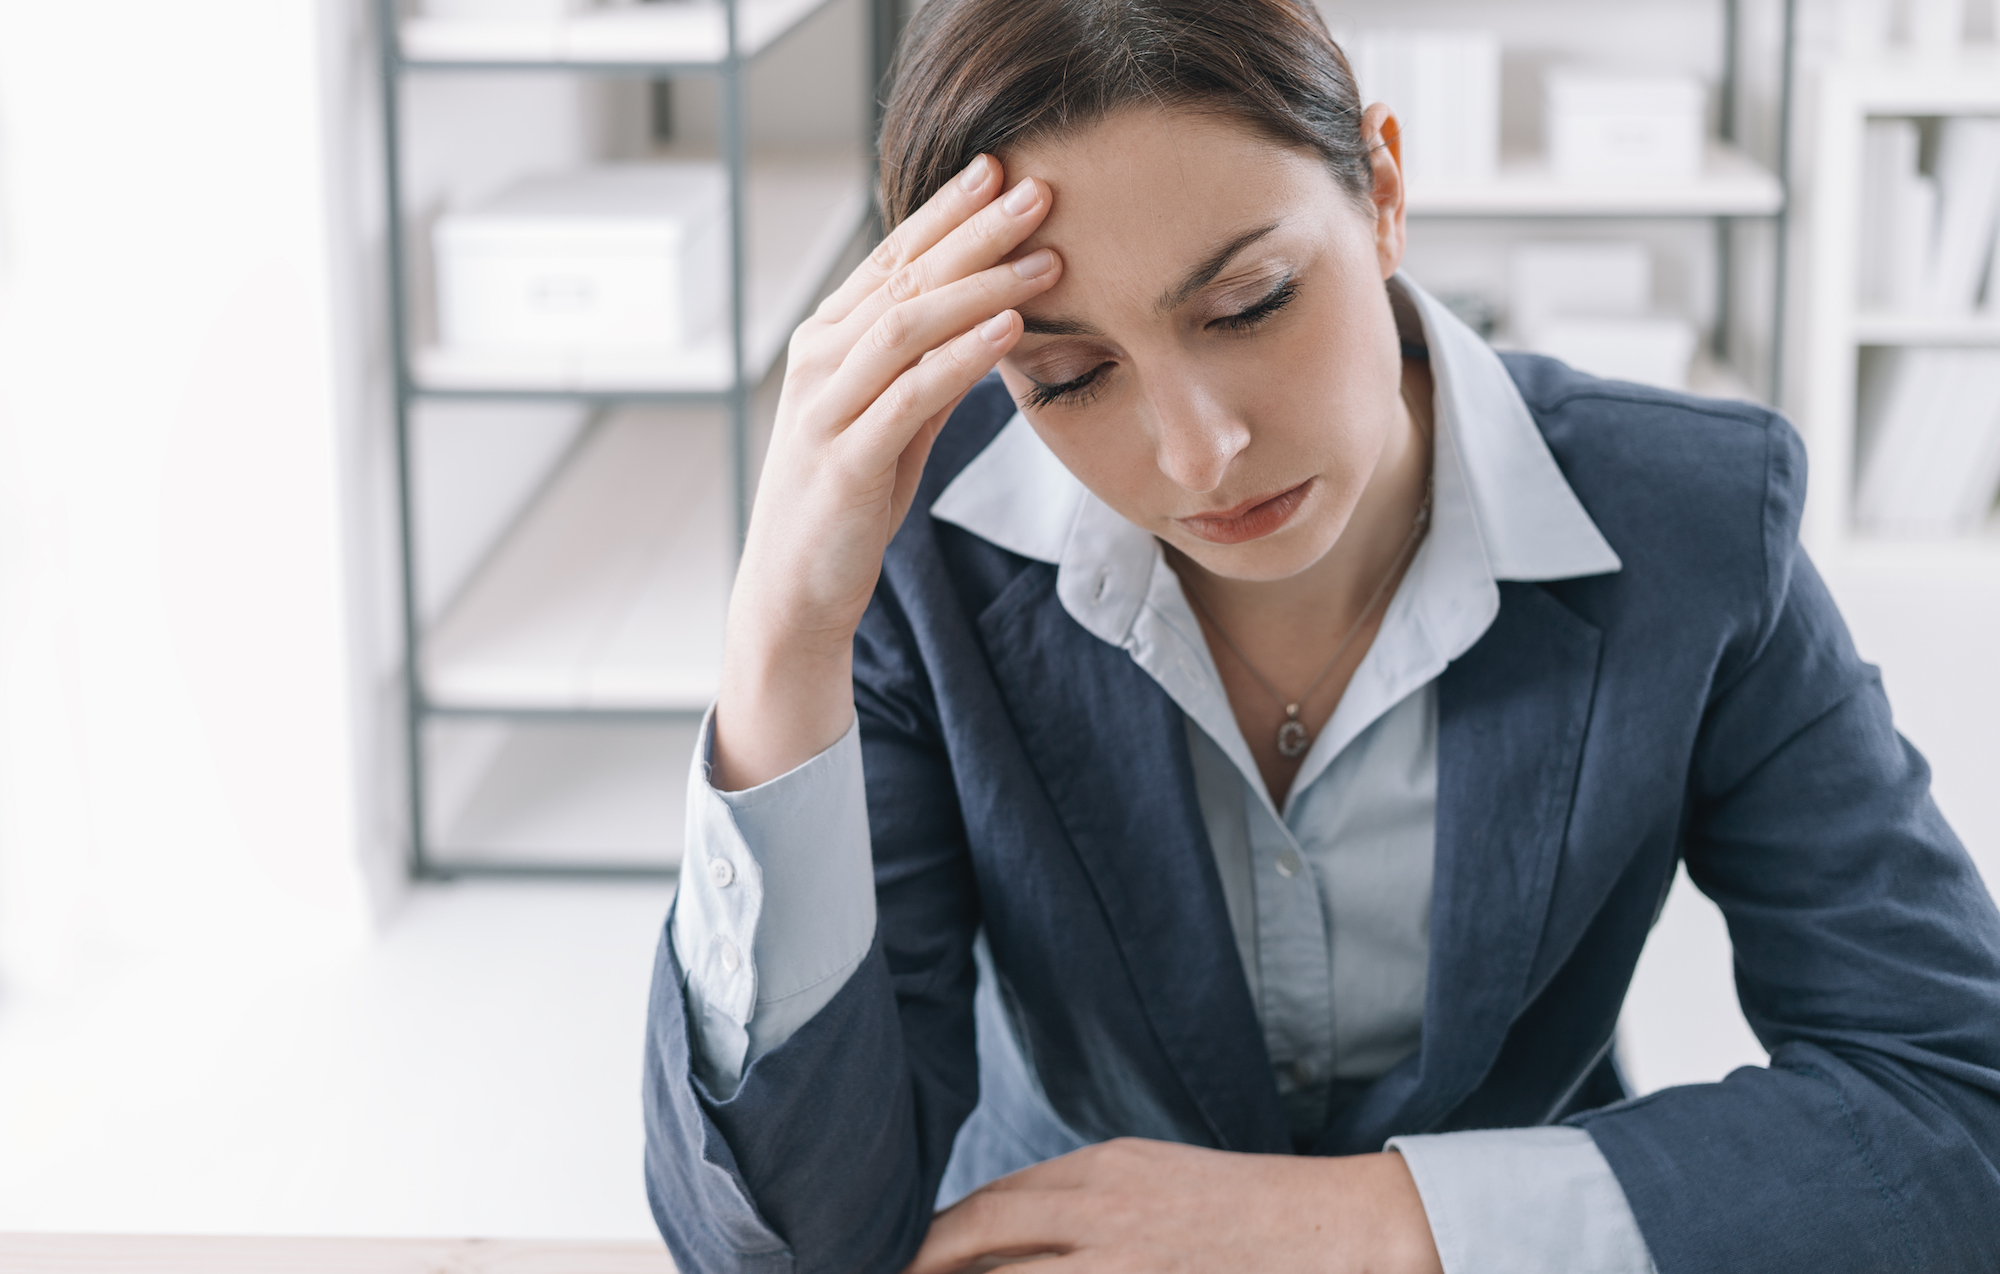 exhausted-businesswoman-in-the-office-PG5KD8Q.jpg